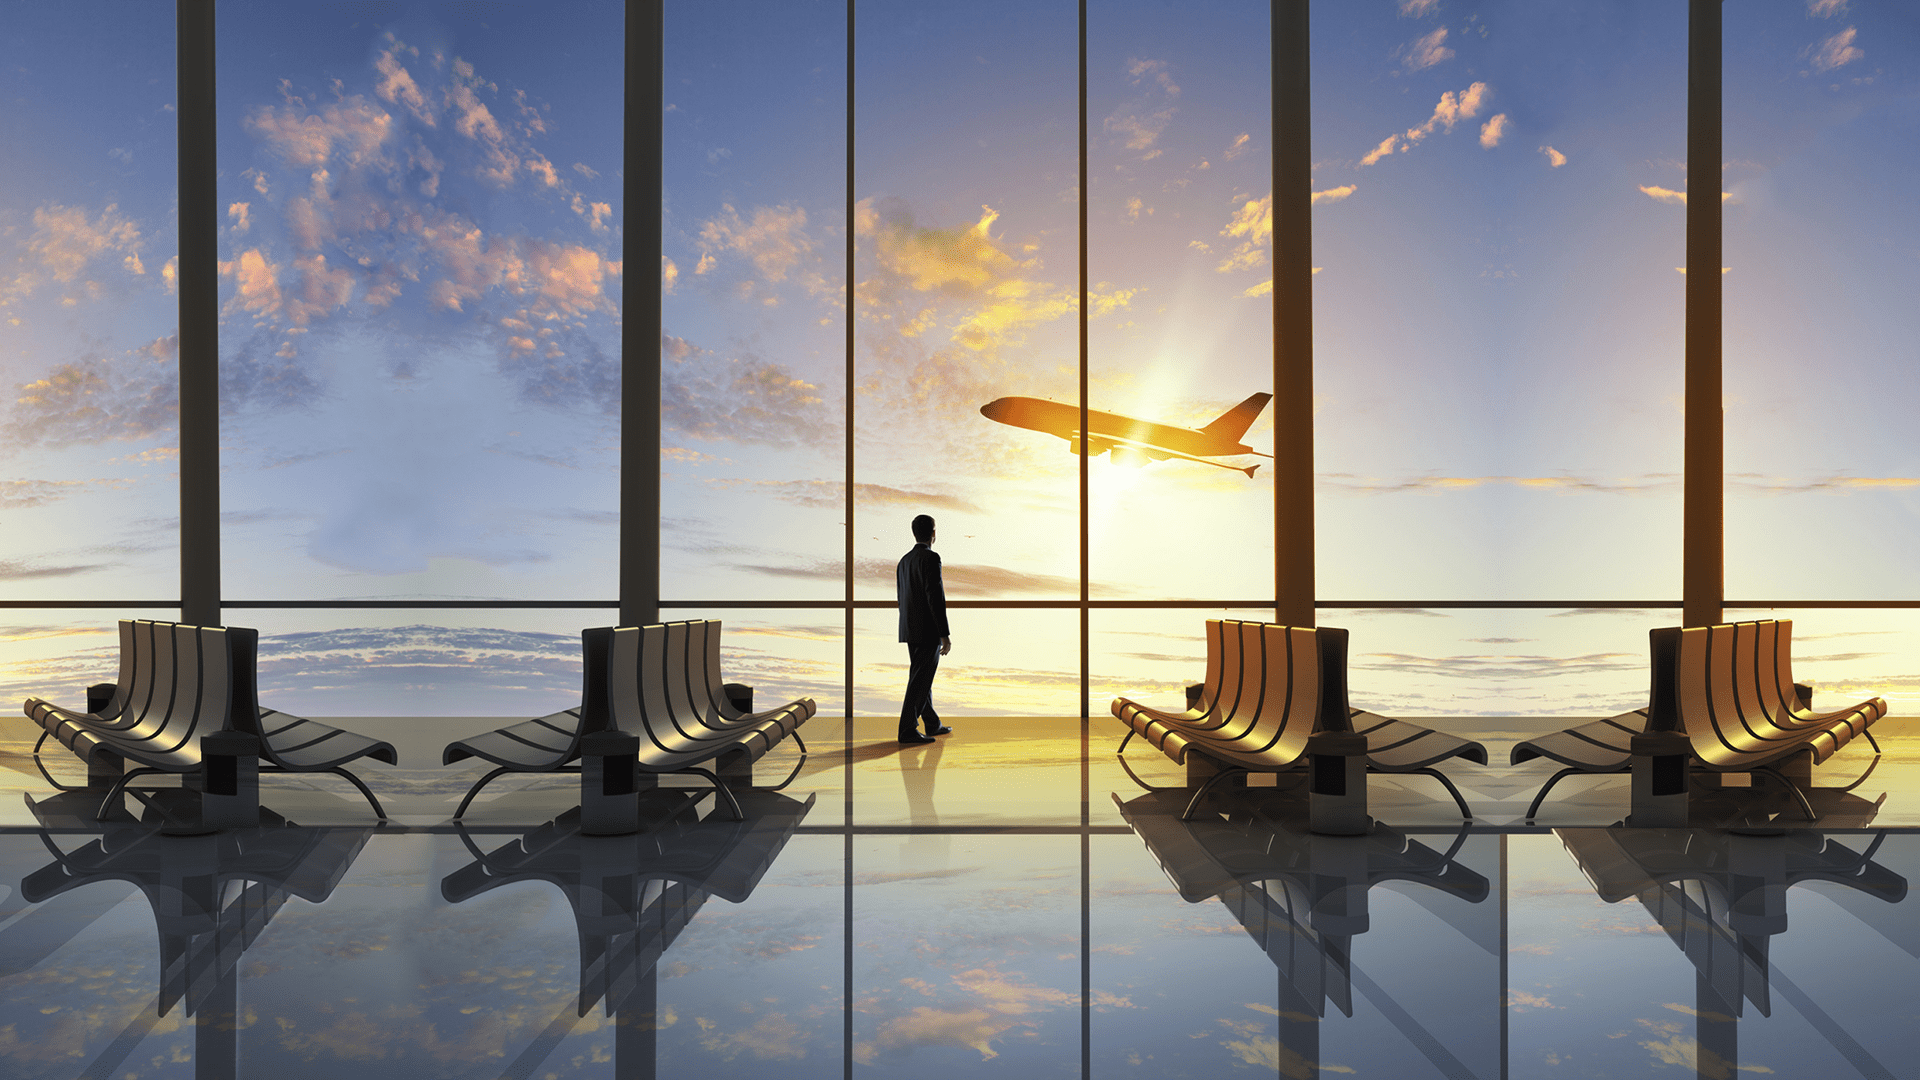 Free Hd Live Wallpapers For Pc Airport Wallpapers Hd Download Free Pixelstalk Net